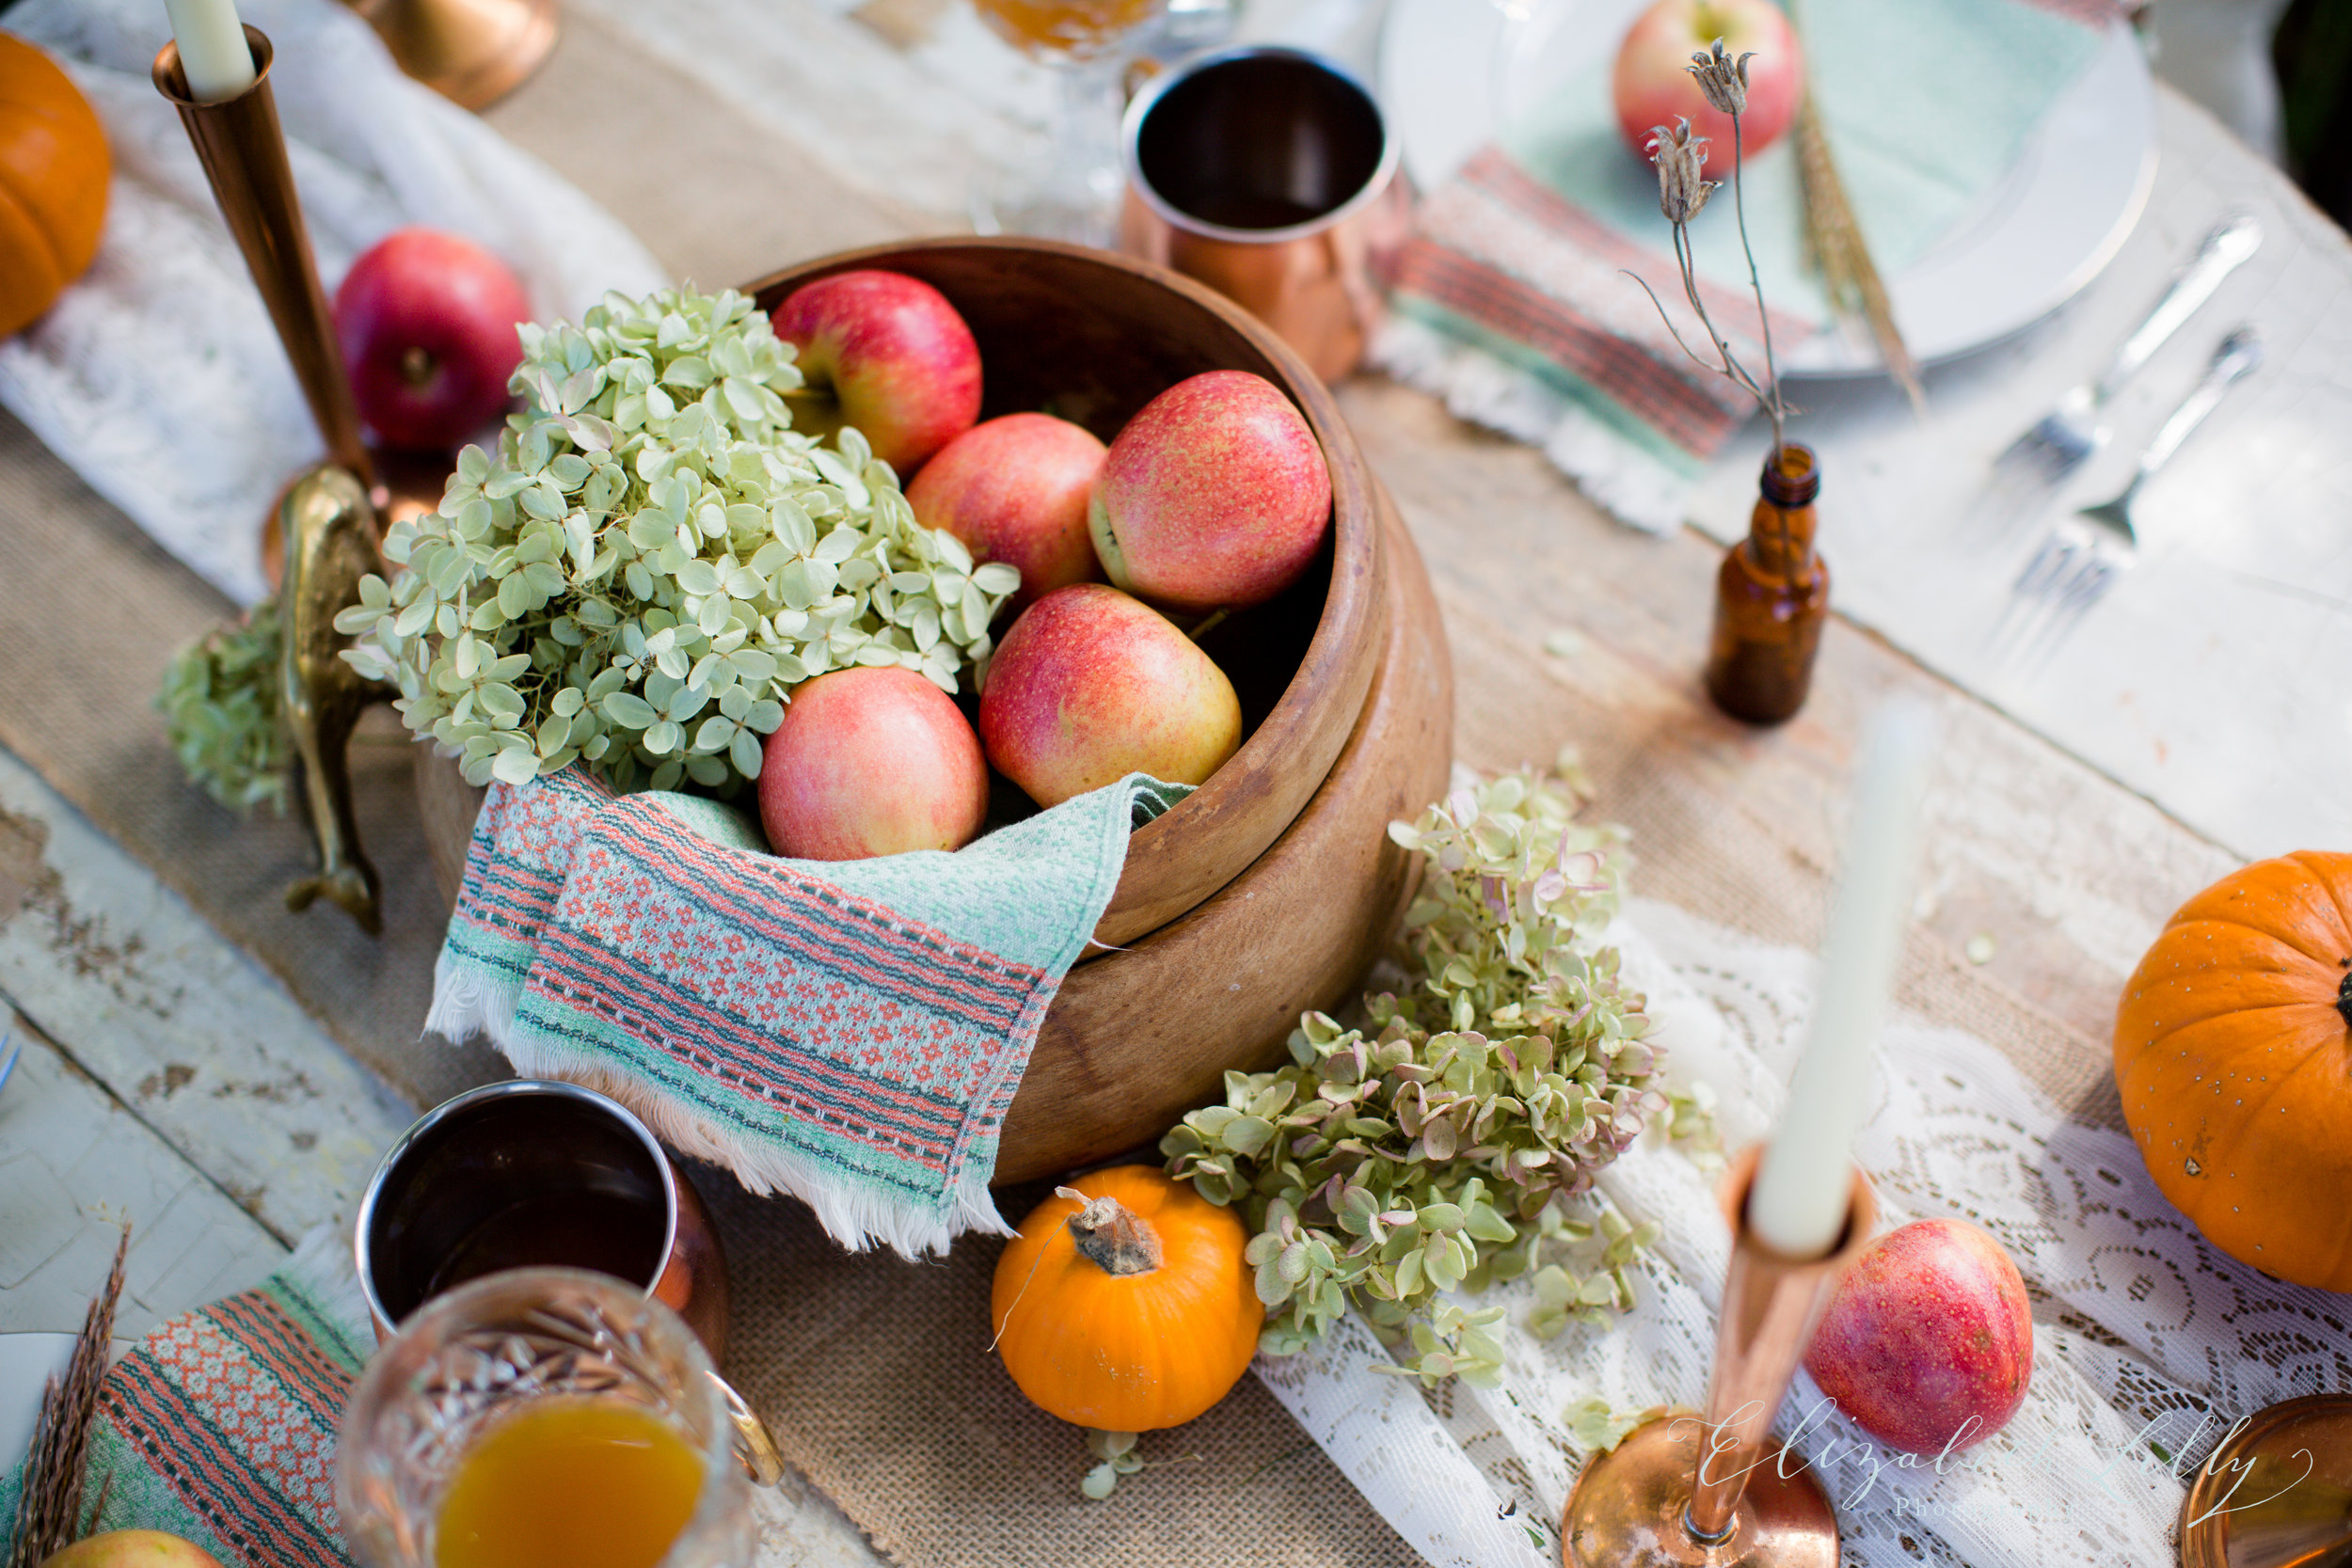 Elizabeth Lilly Photography  joined us in Stella's backyard for a styled fall photo shoot.